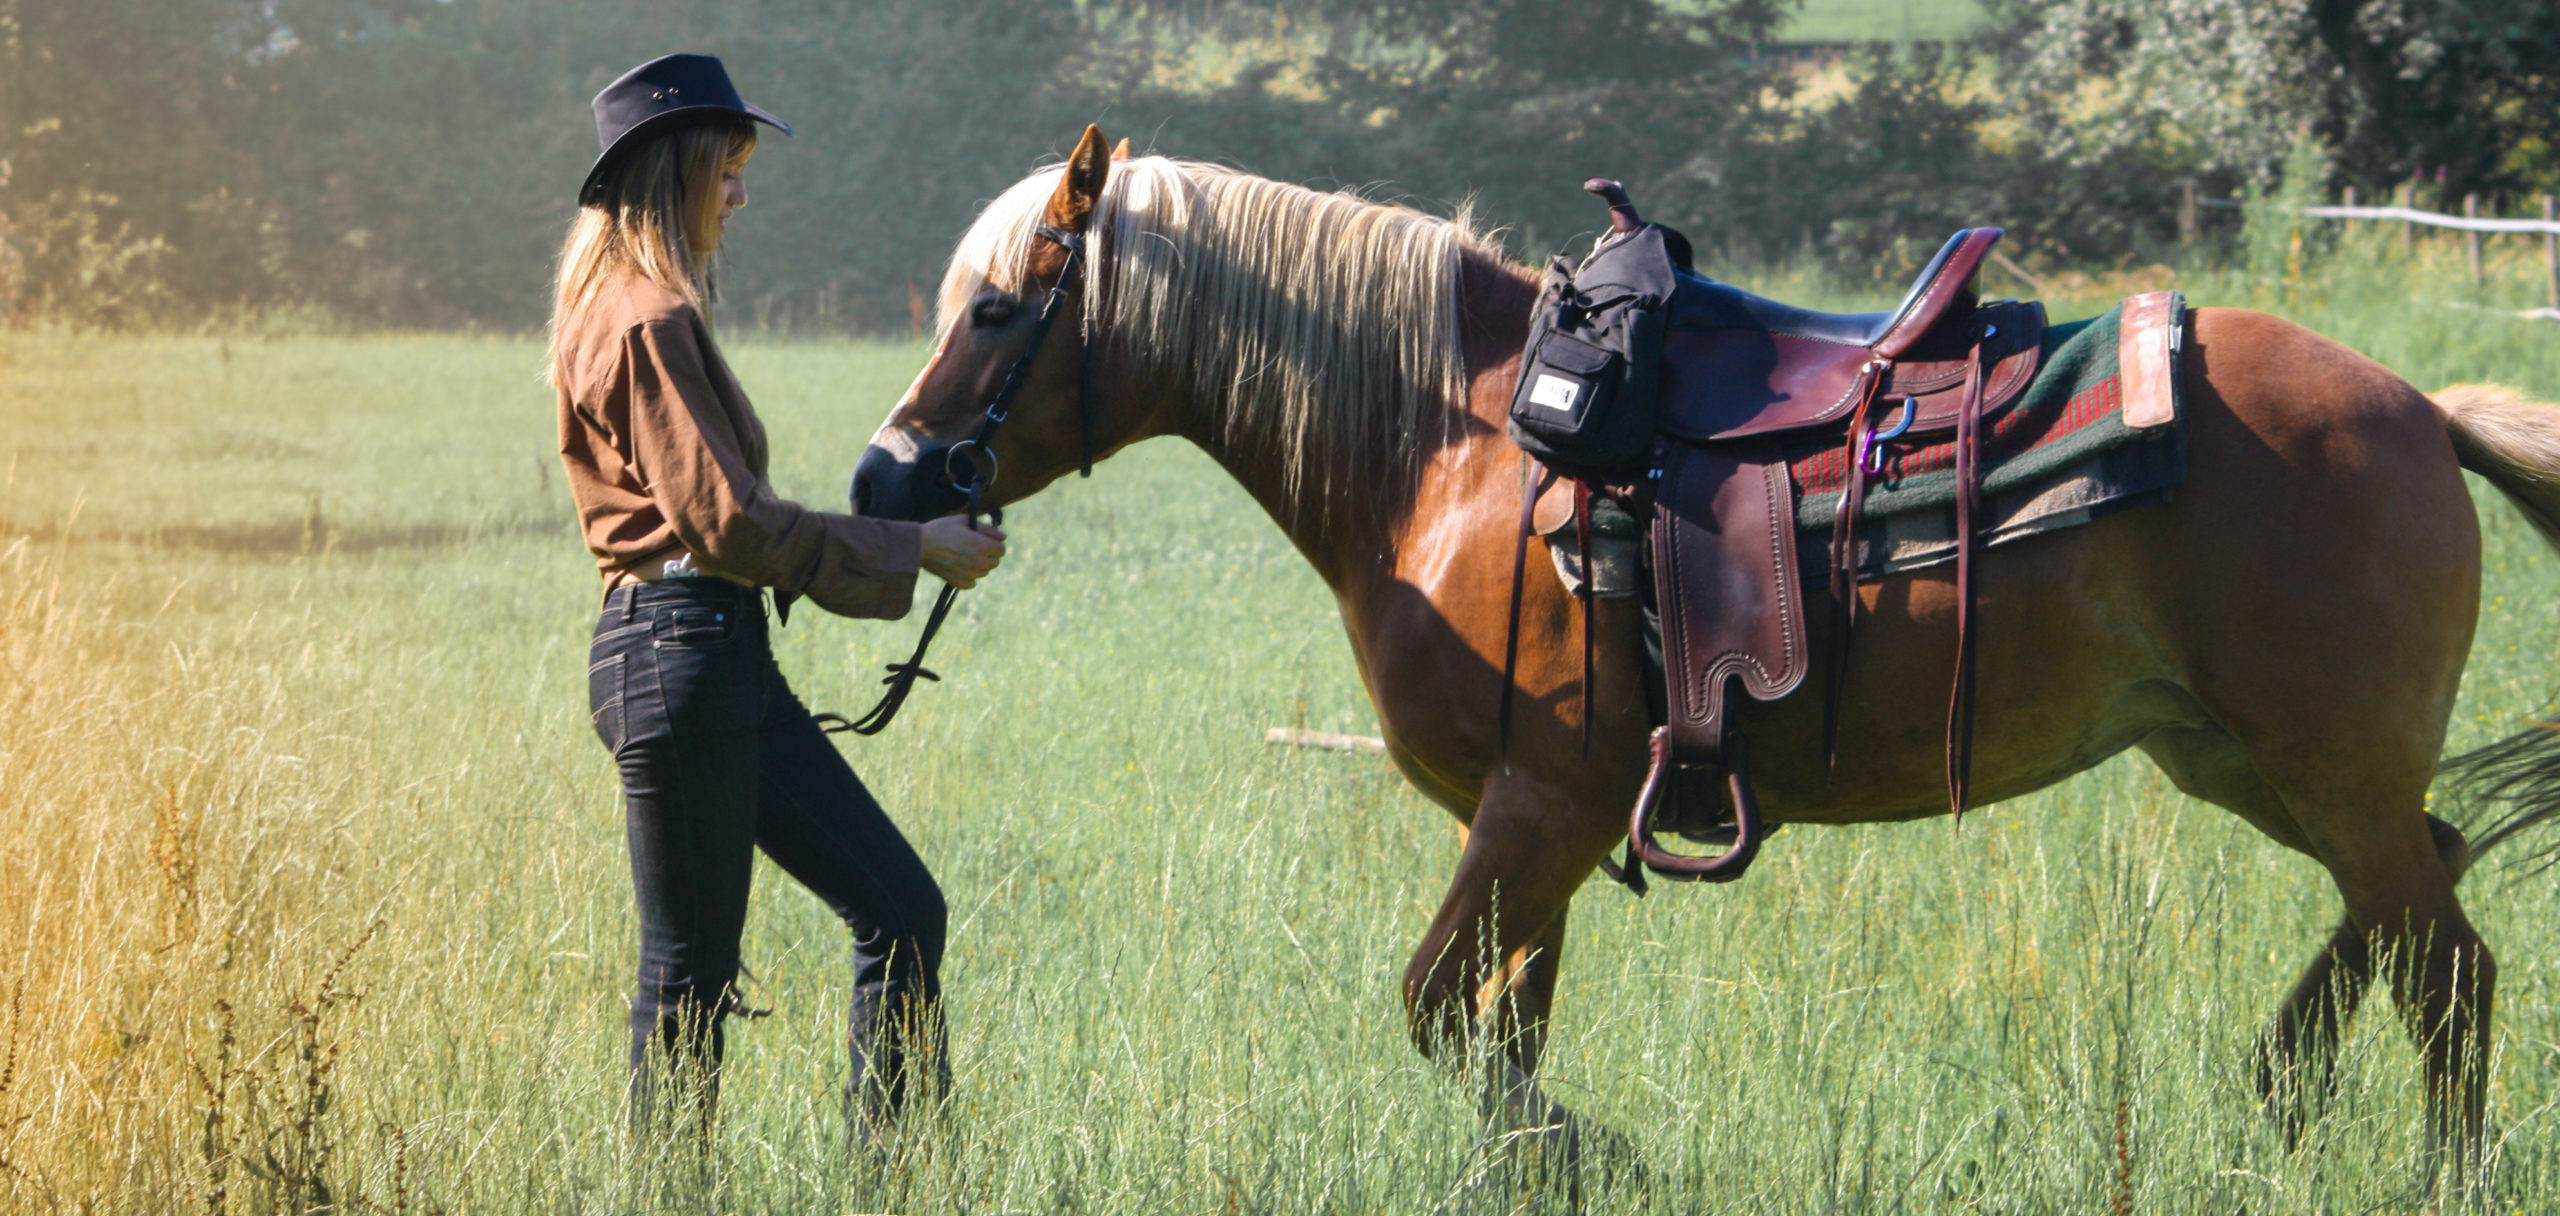 What To Wear For Horseback Riding in Cold Weather